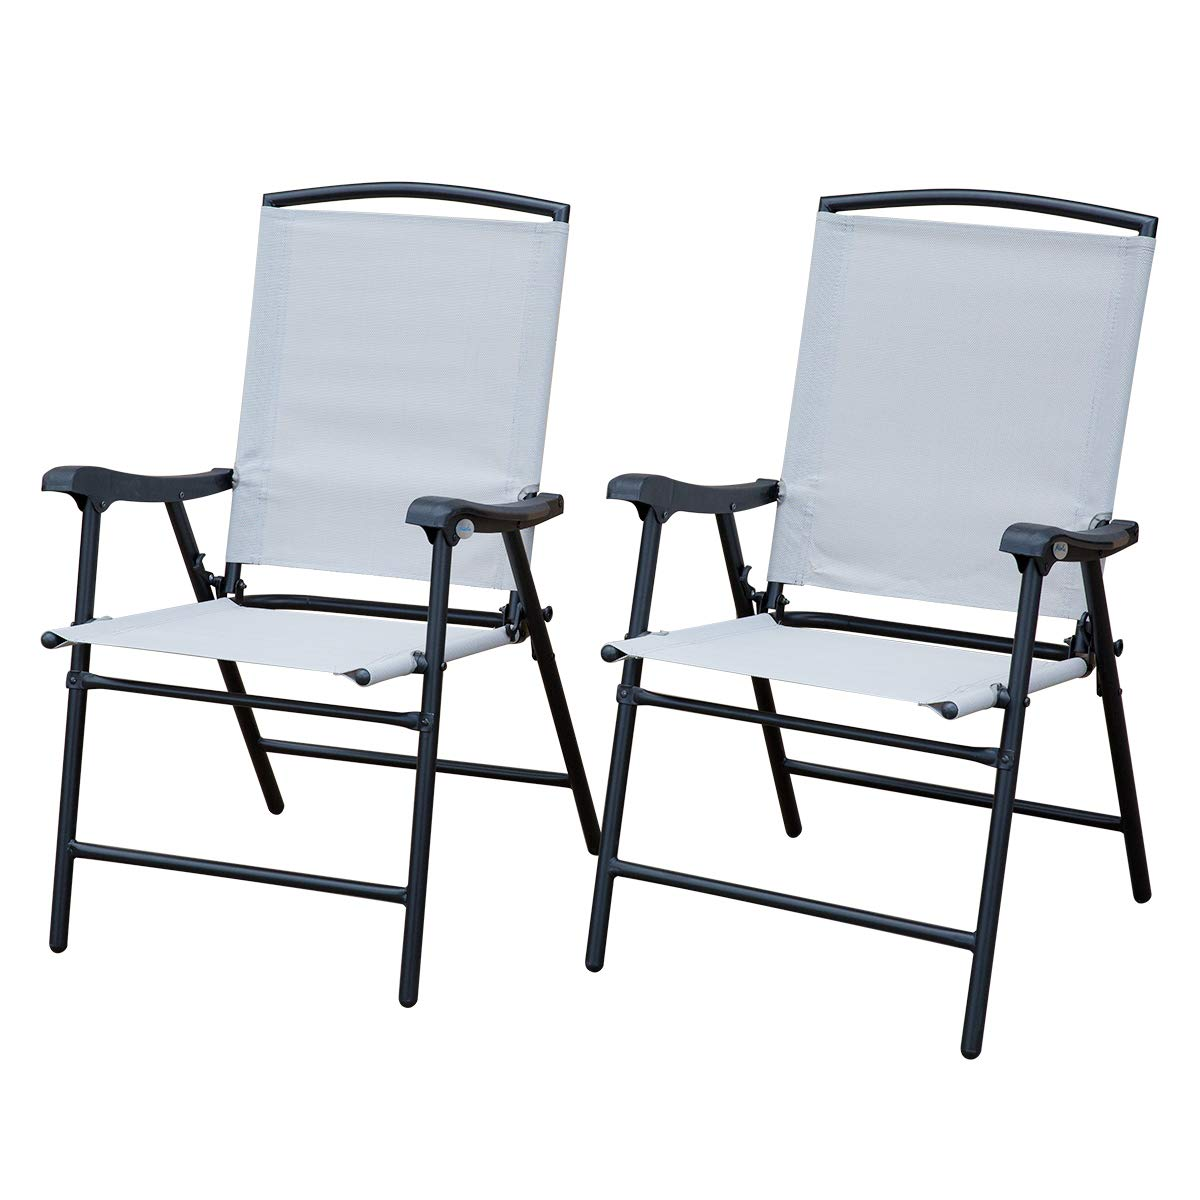 SunLife Outdoor Folding Lawn Chairs with Steel Frame, Portable for Lawn, Garden, Patio, Beach, Set of 2, Black Frame, Beige Fabric